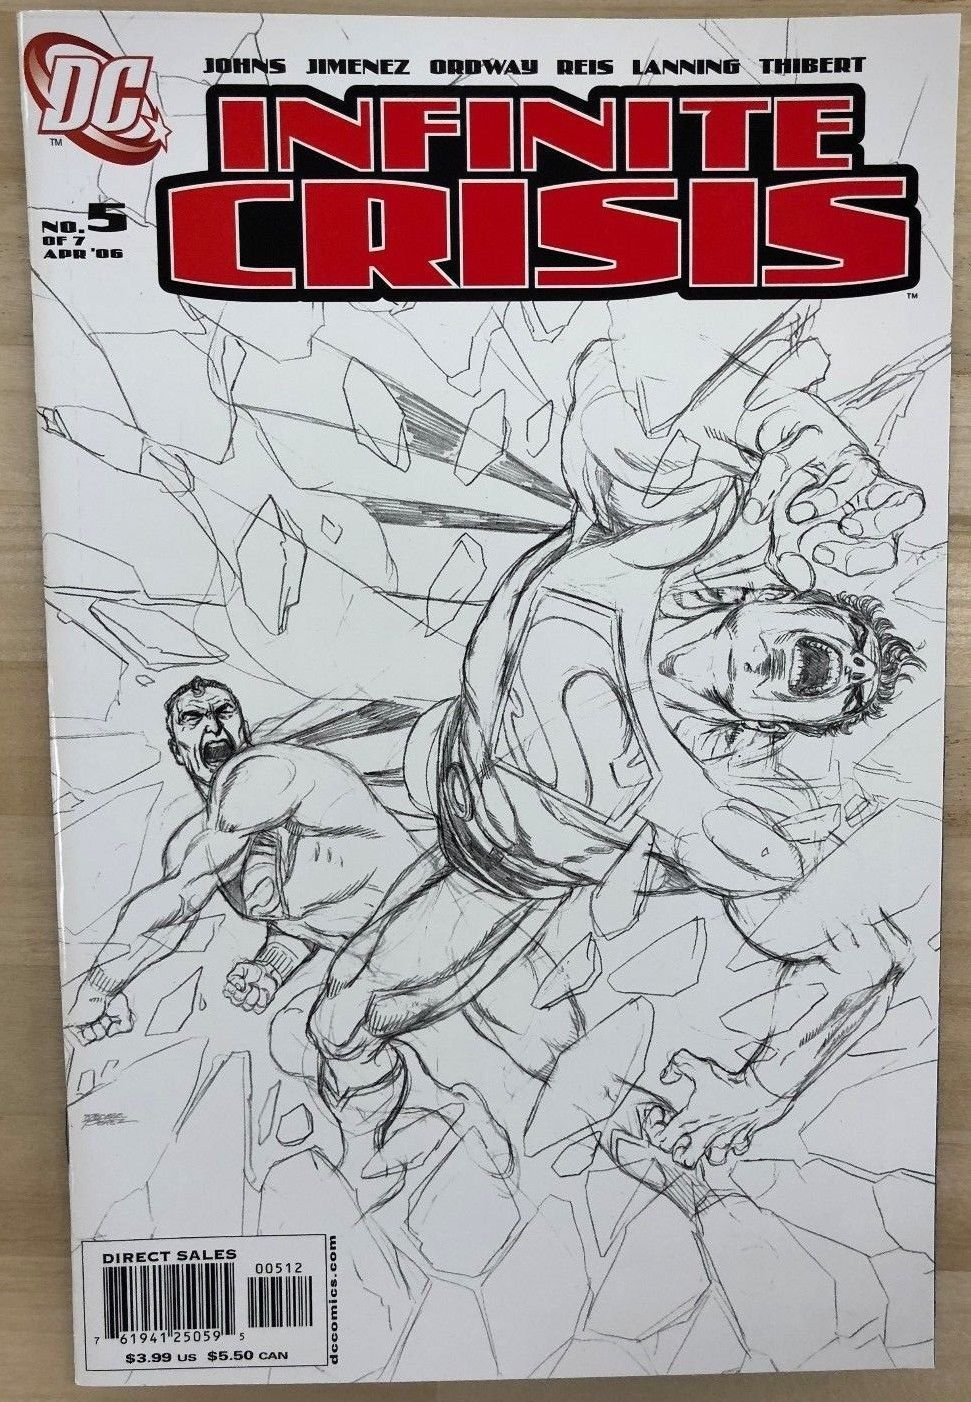 Primary image for INFINITE CRISIS #5 (2006) DC Comics variant edition VF